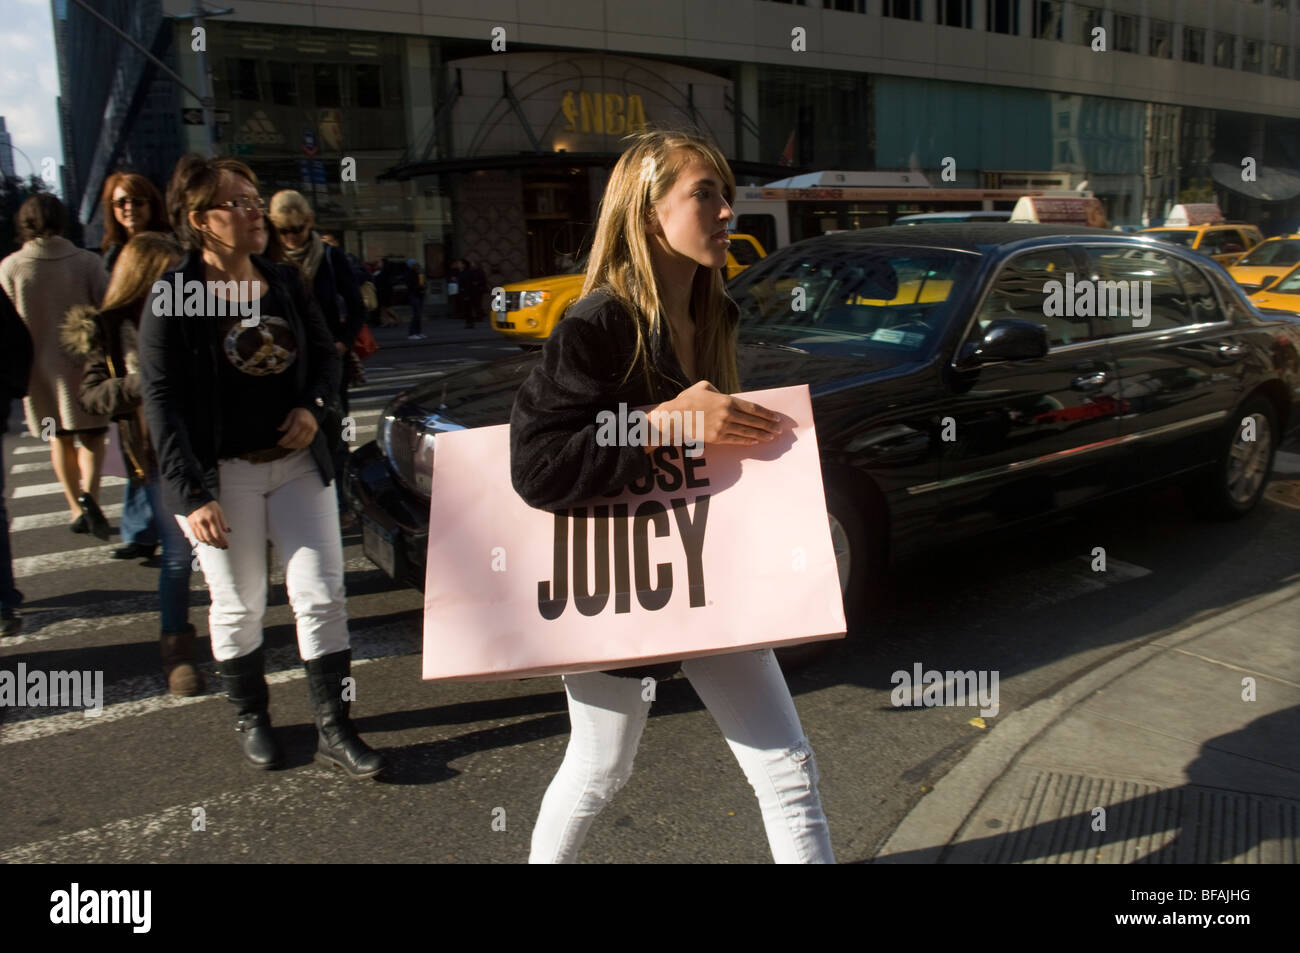 A Juicy Couture shopper in the midtown neighborhood of New York on Tuesday, November 3, 2009. (© Frances M. - Stock Image